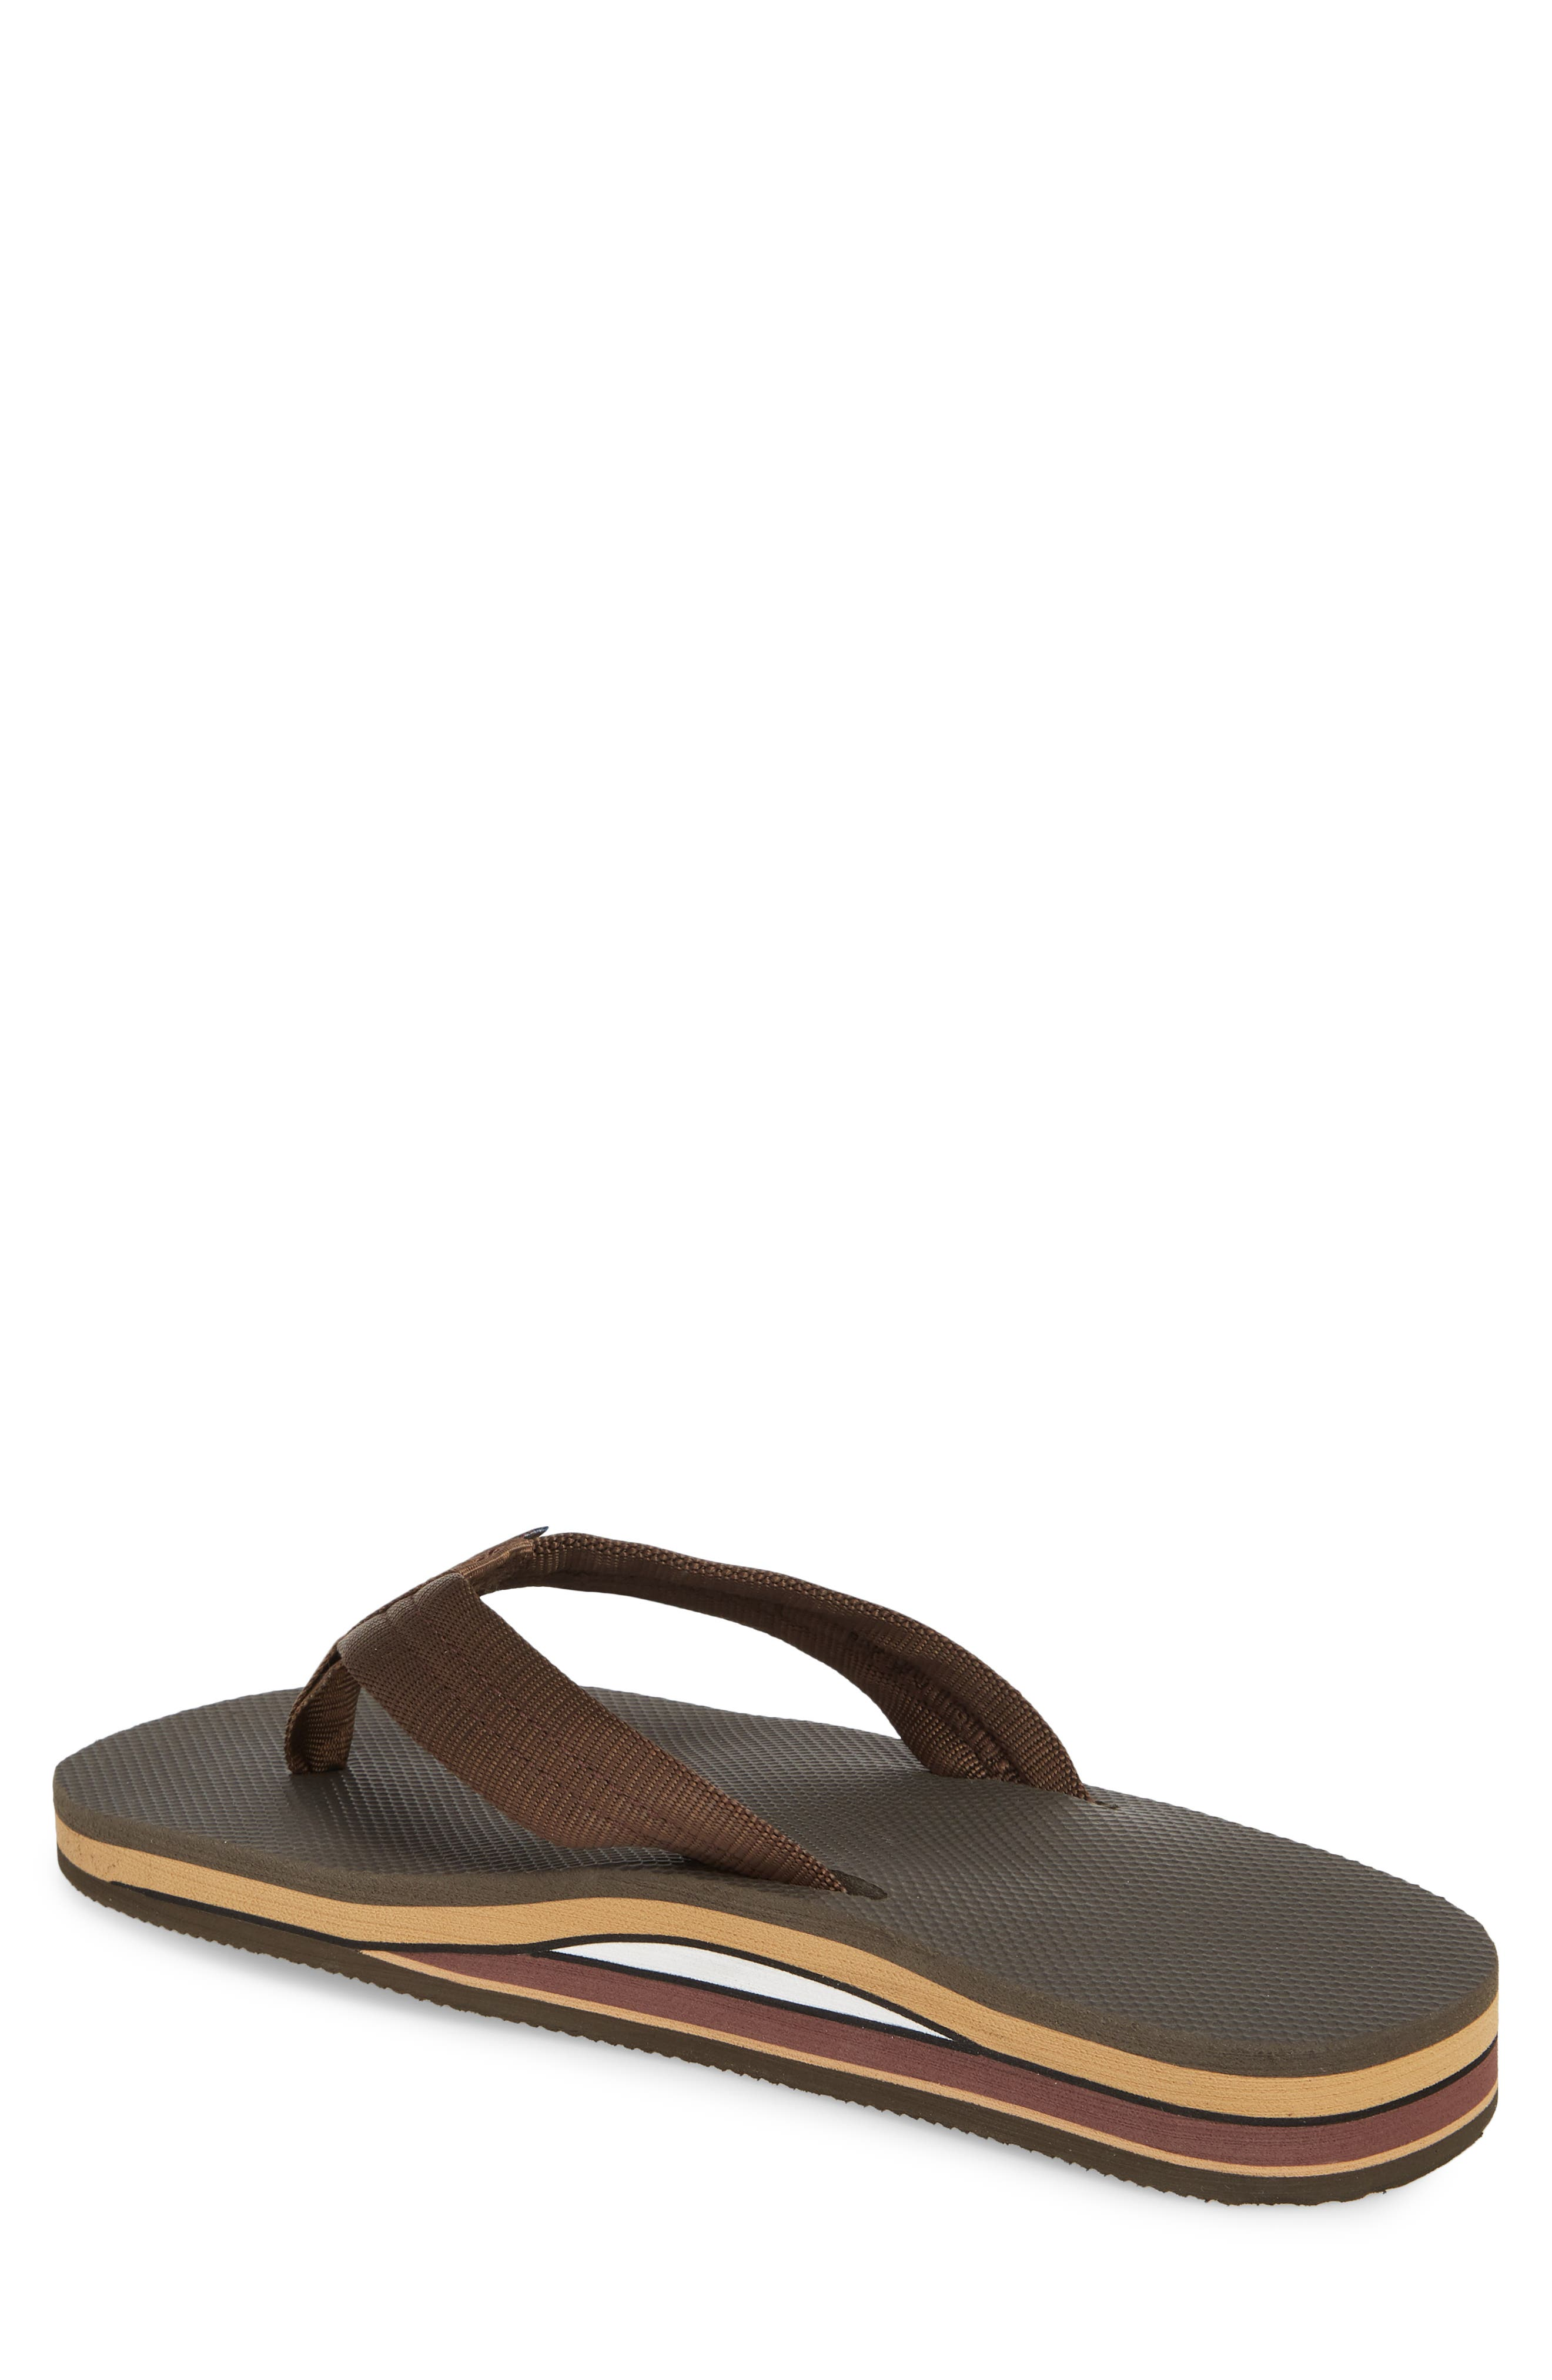 Double Layer Classic Flip Flop,                             Alternate thumbnail 2, color,                             Brown